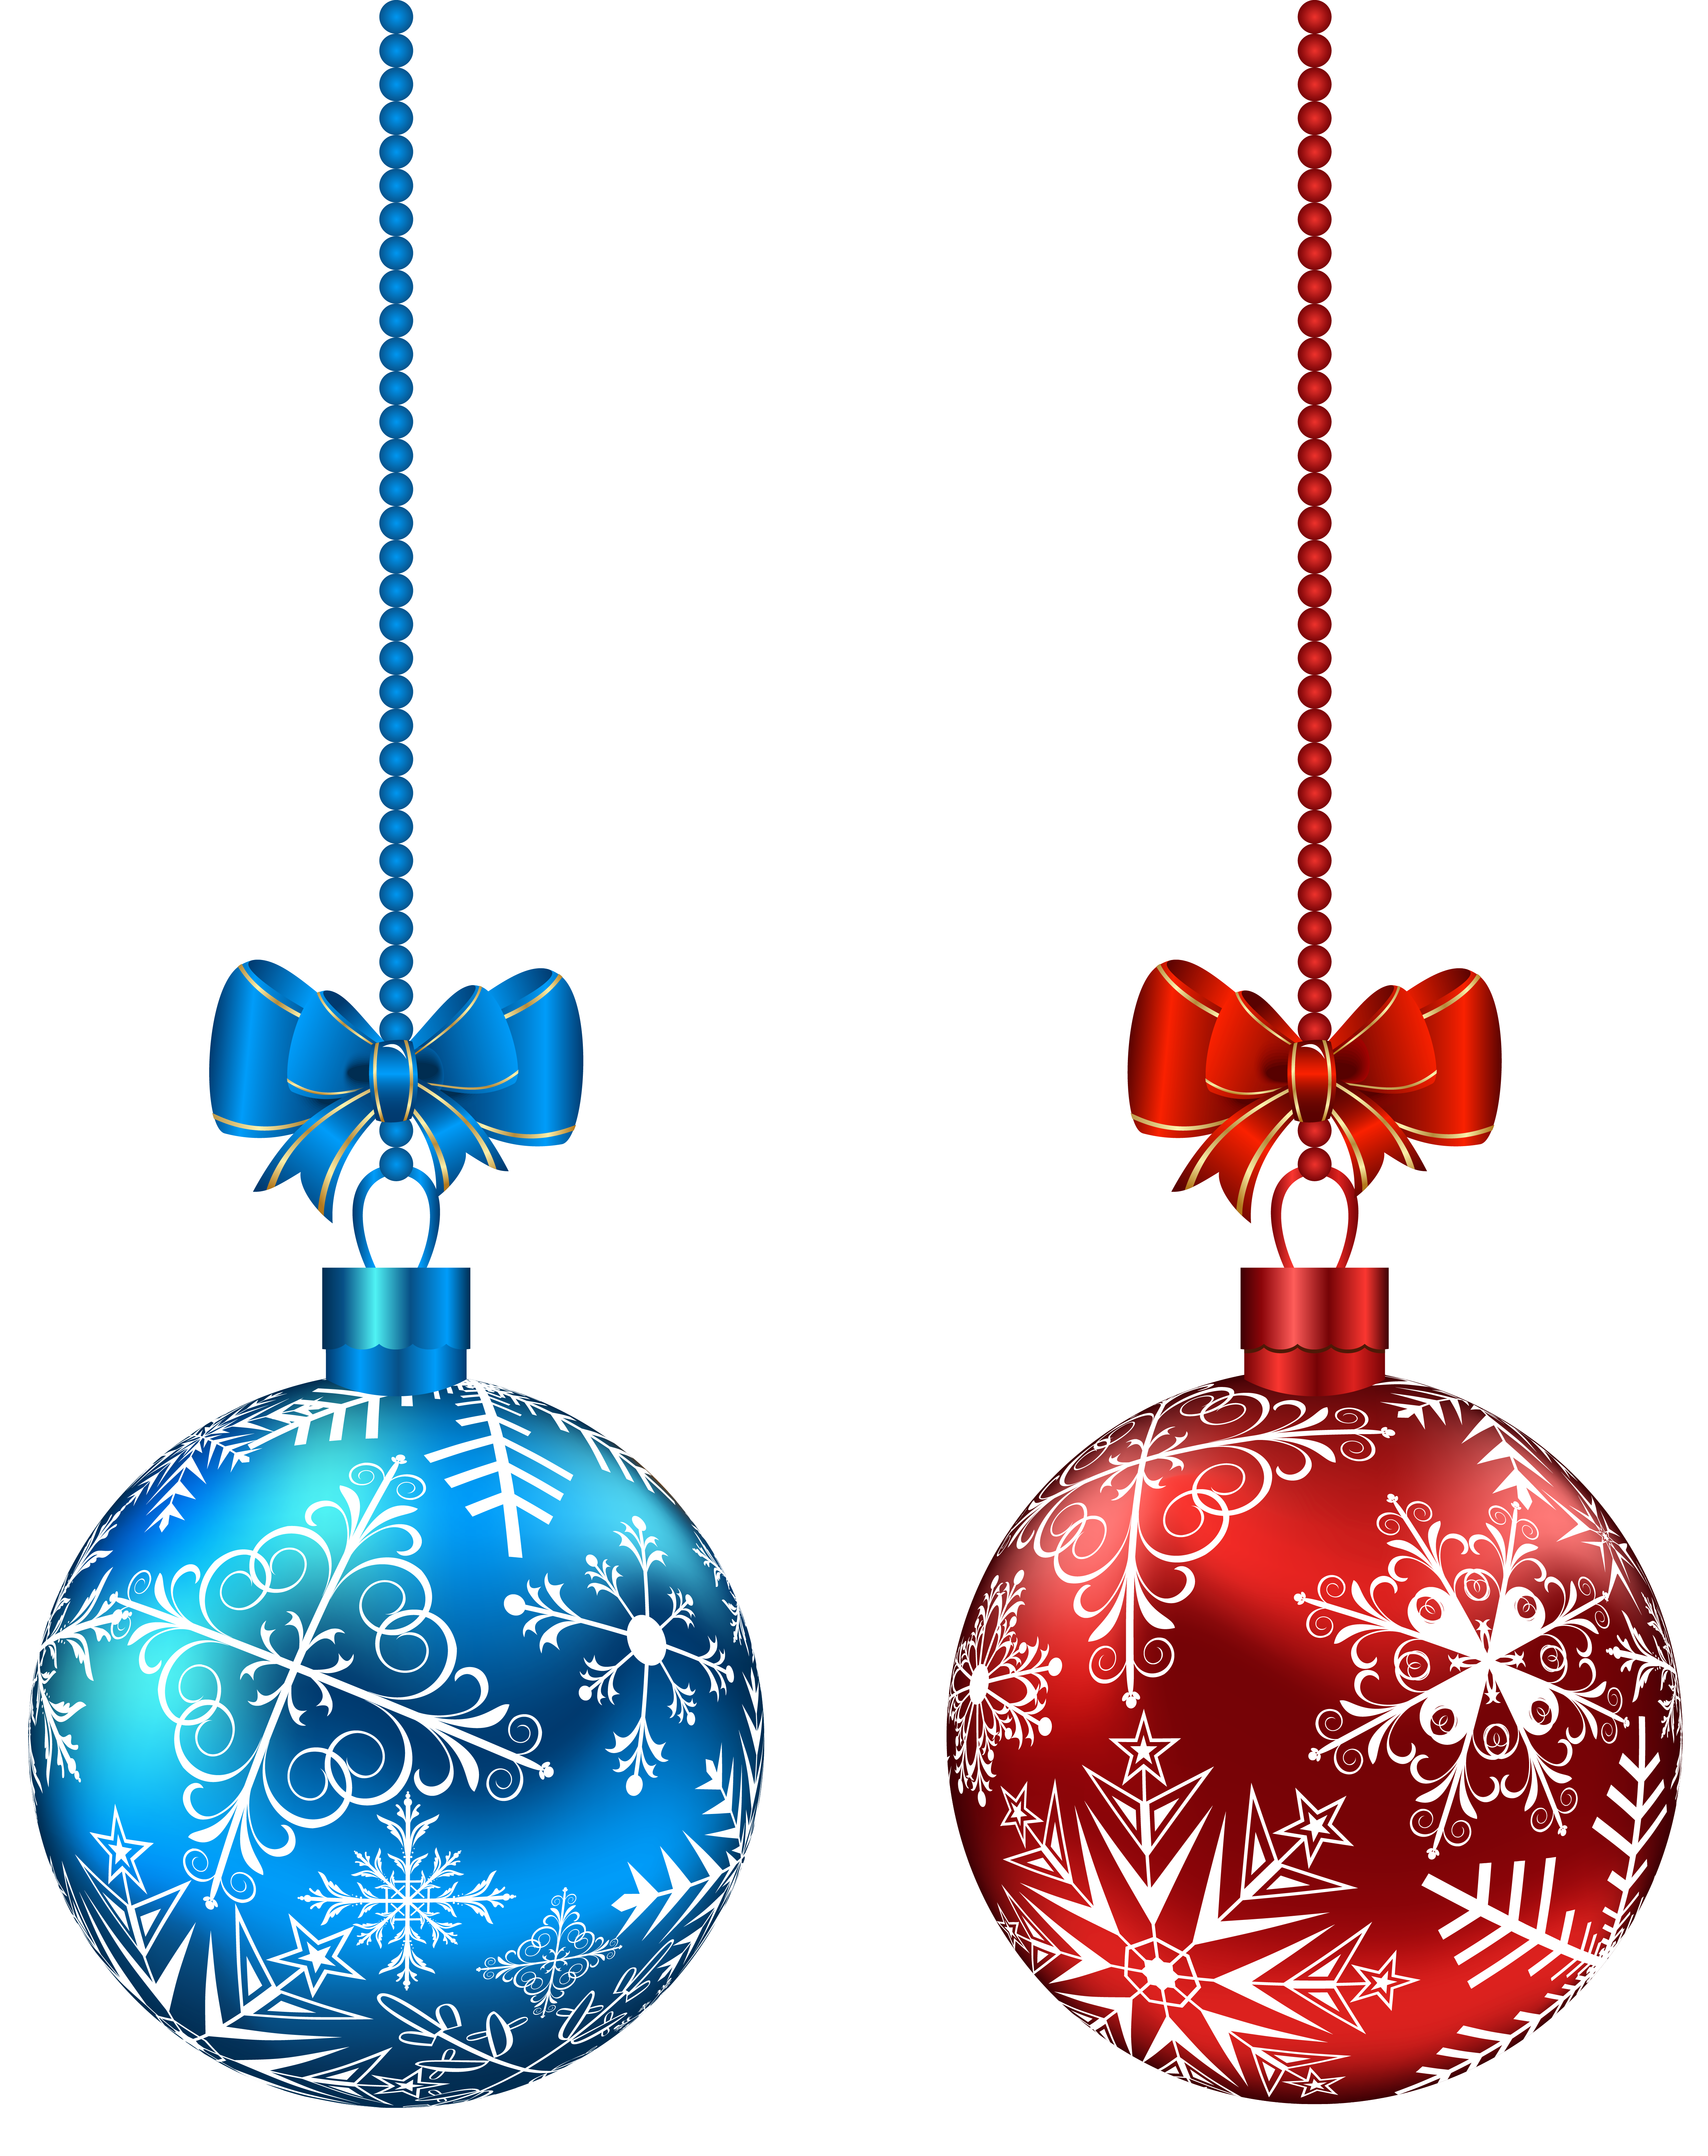 Png Christmas Ornament.Christmas Balls Silhouette At Getdrawings Com Free For